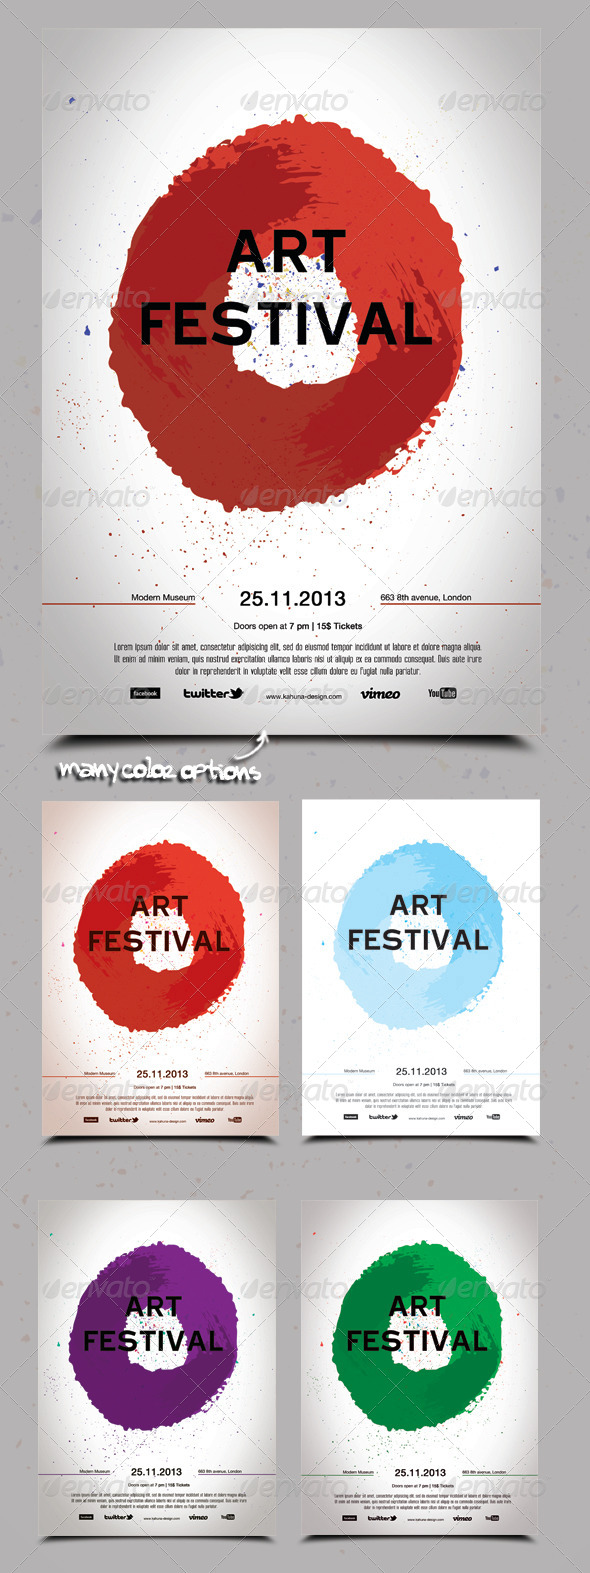 GraphicRiver Art Festival Poster Flyer 5920971